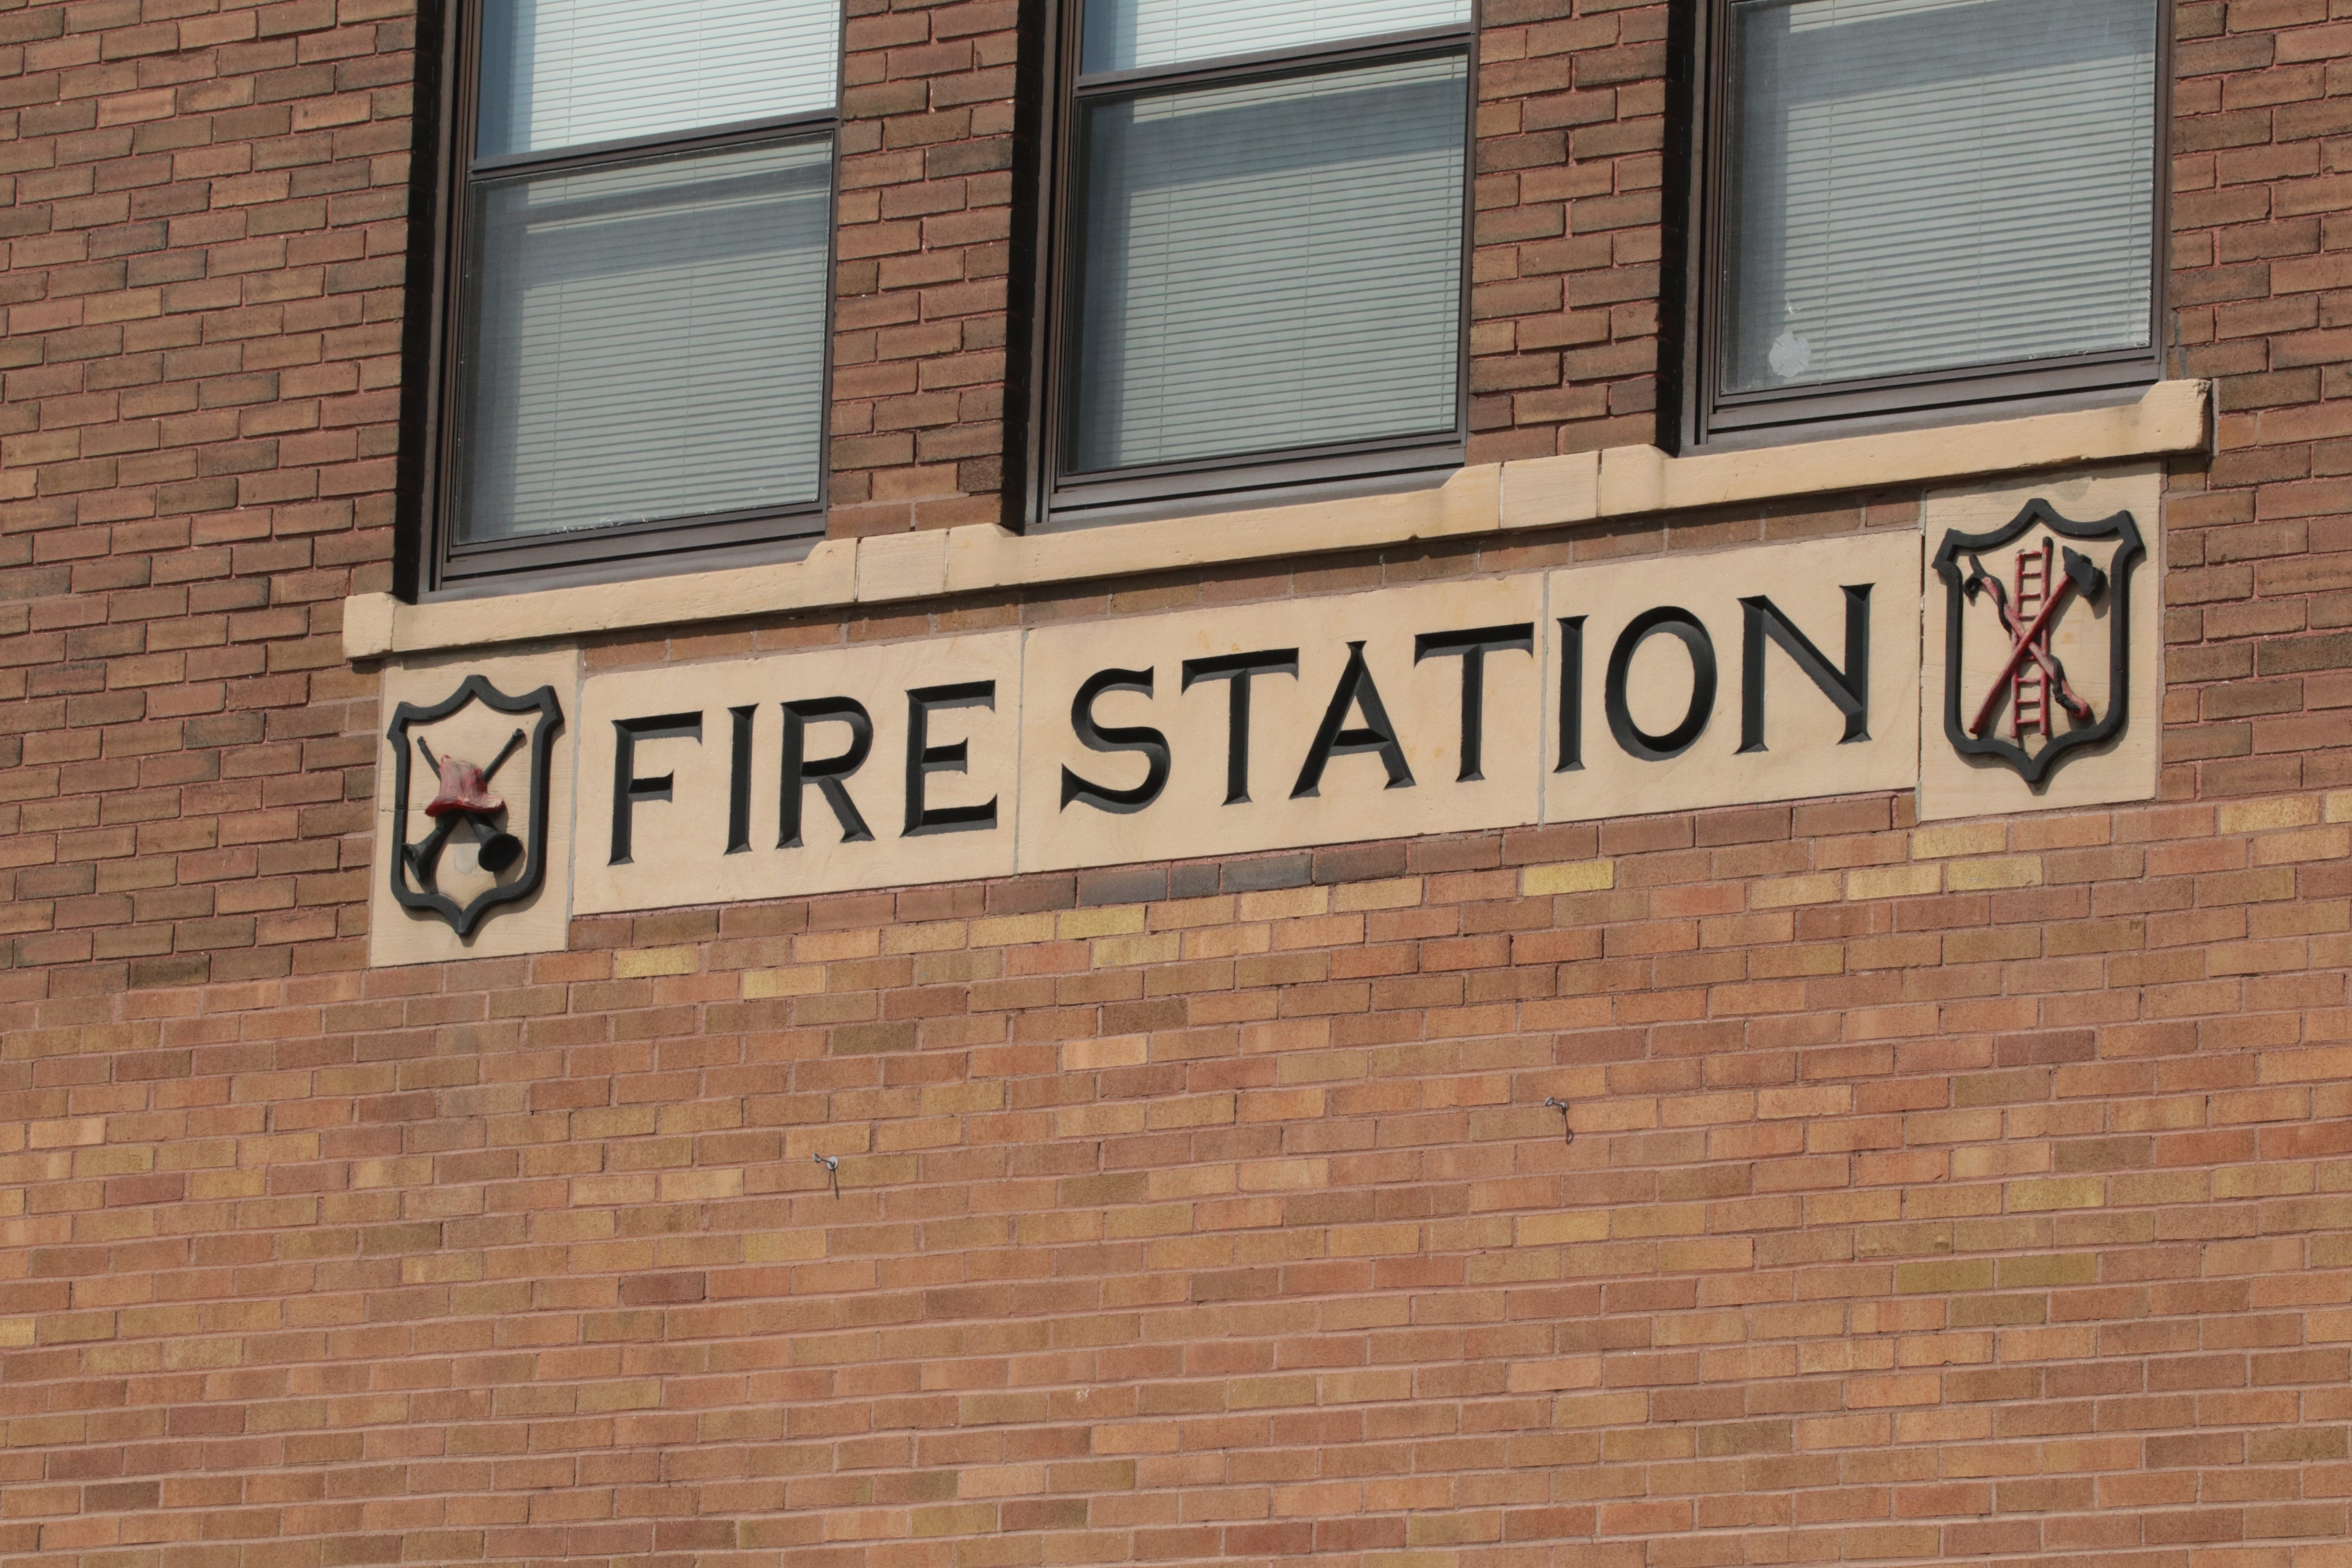 The relief above the main doors of Station 18 is in pristine condition.